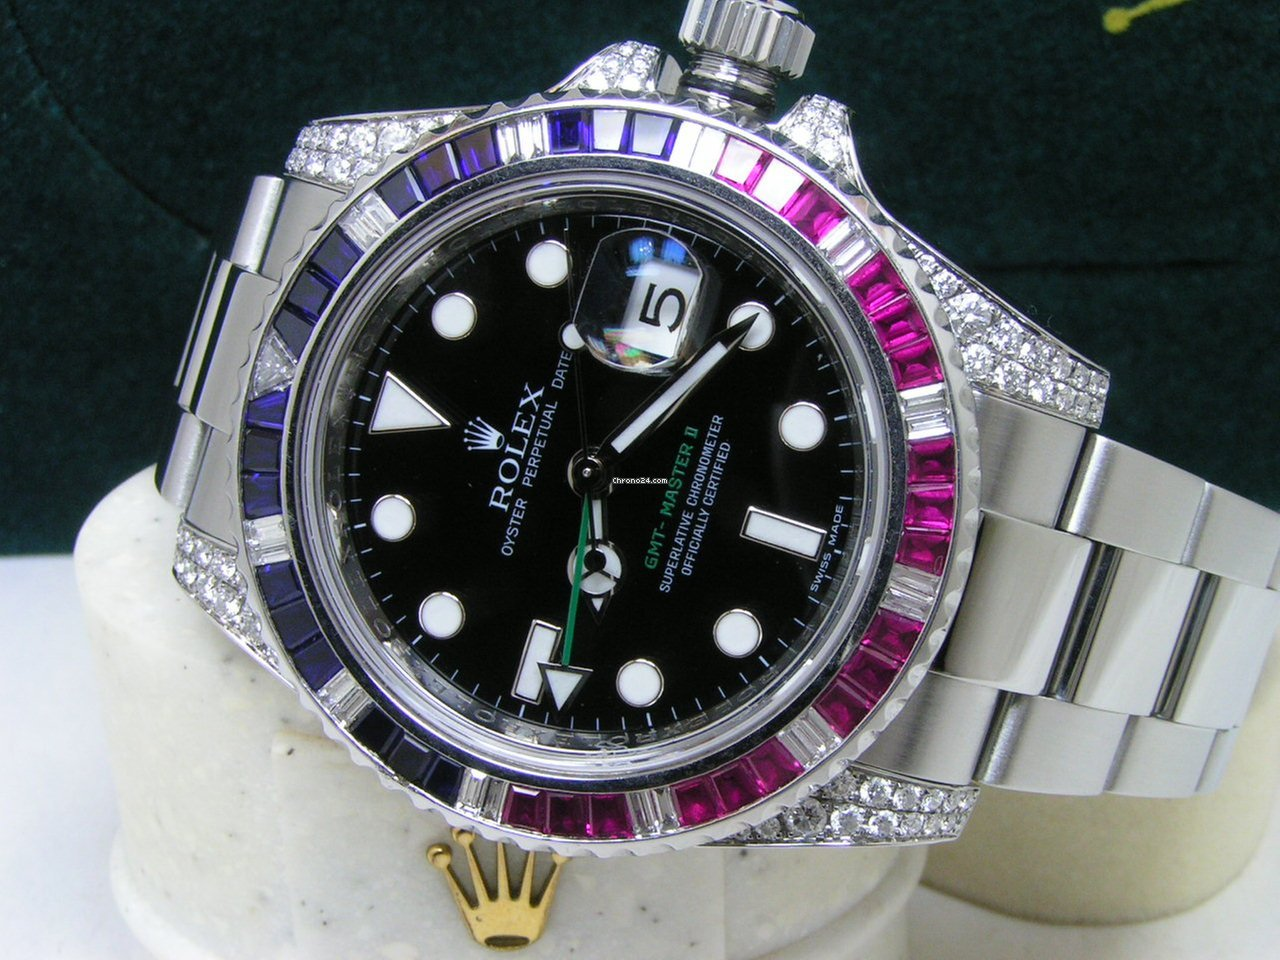 1ac263898a6 Rolex watches - all prices for Rolex watches on Chrono24